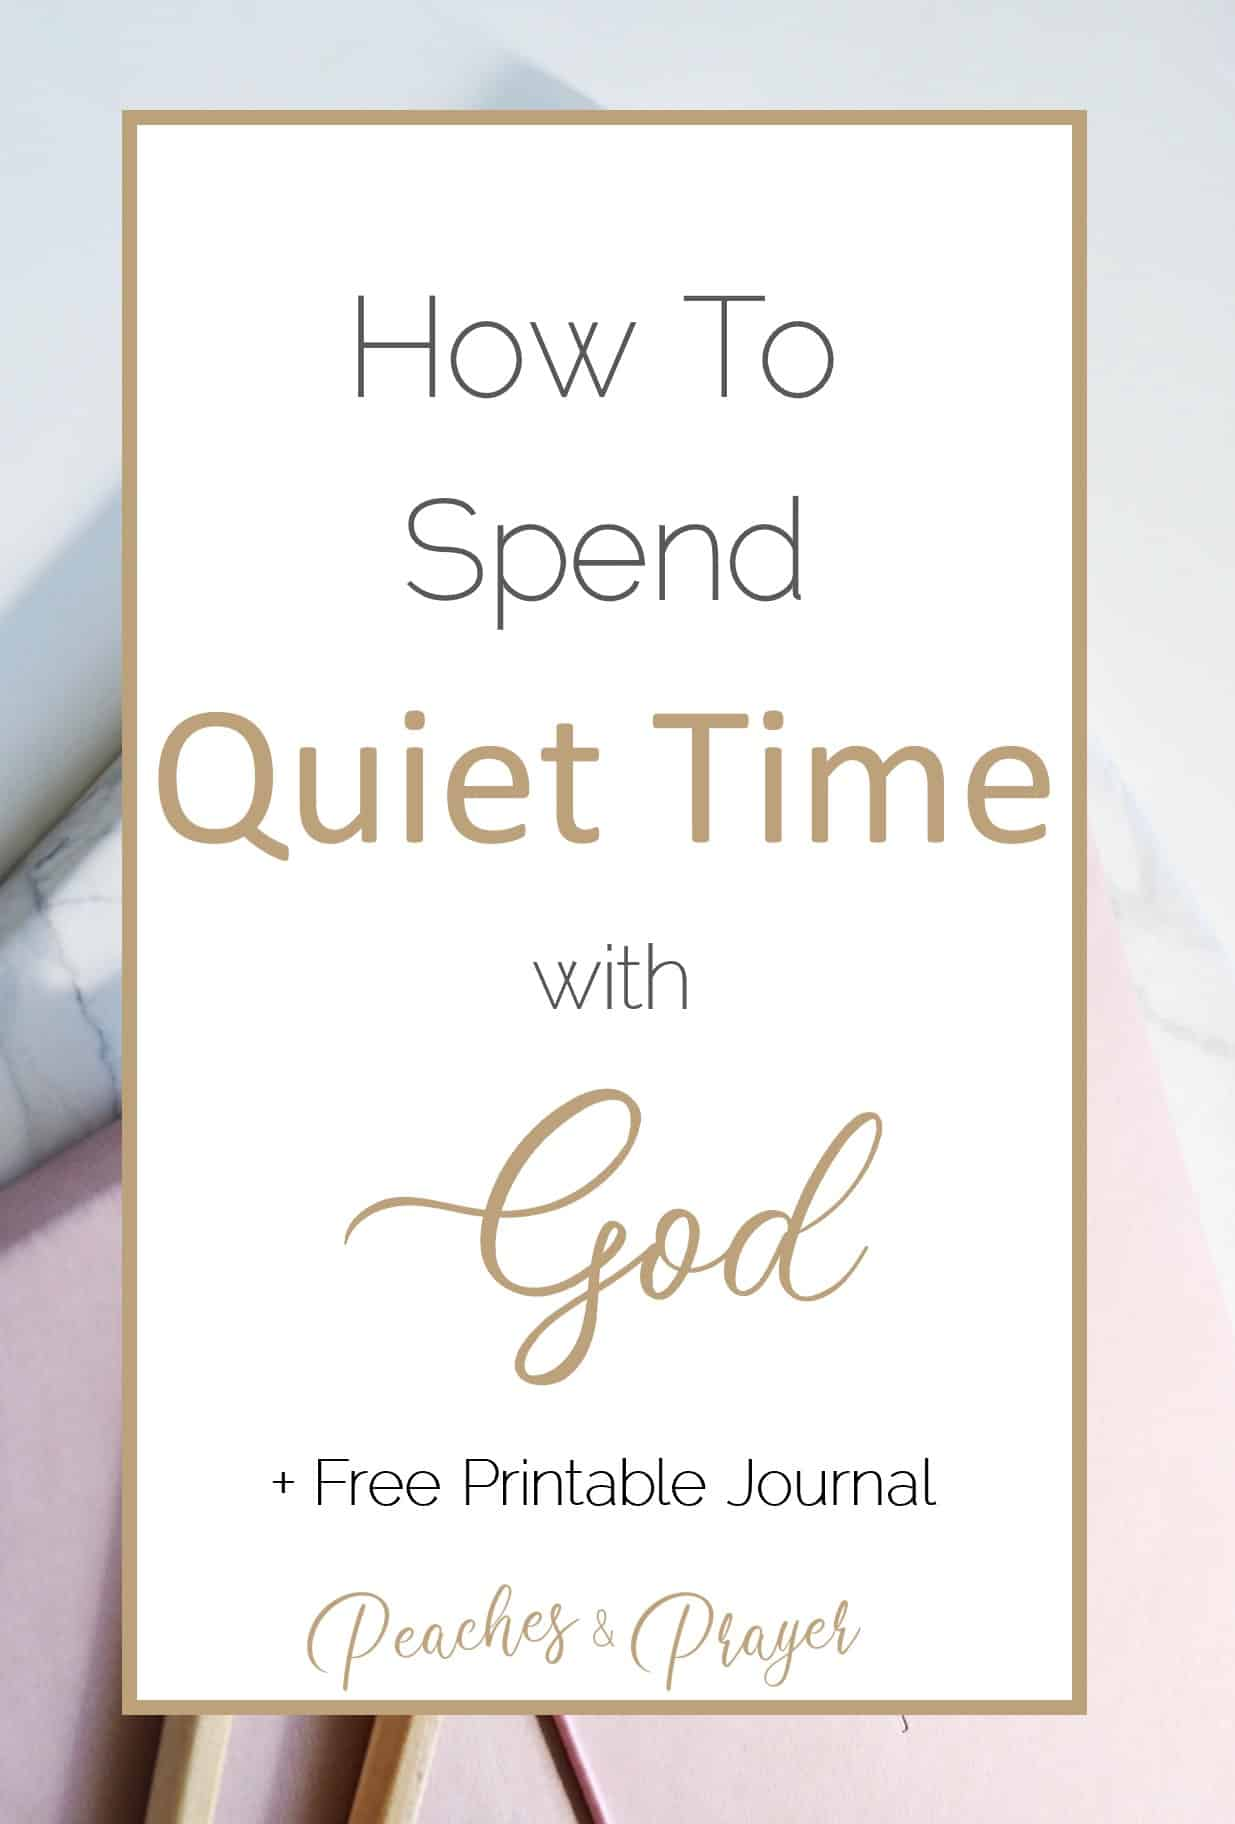 How to spend quiet time with God